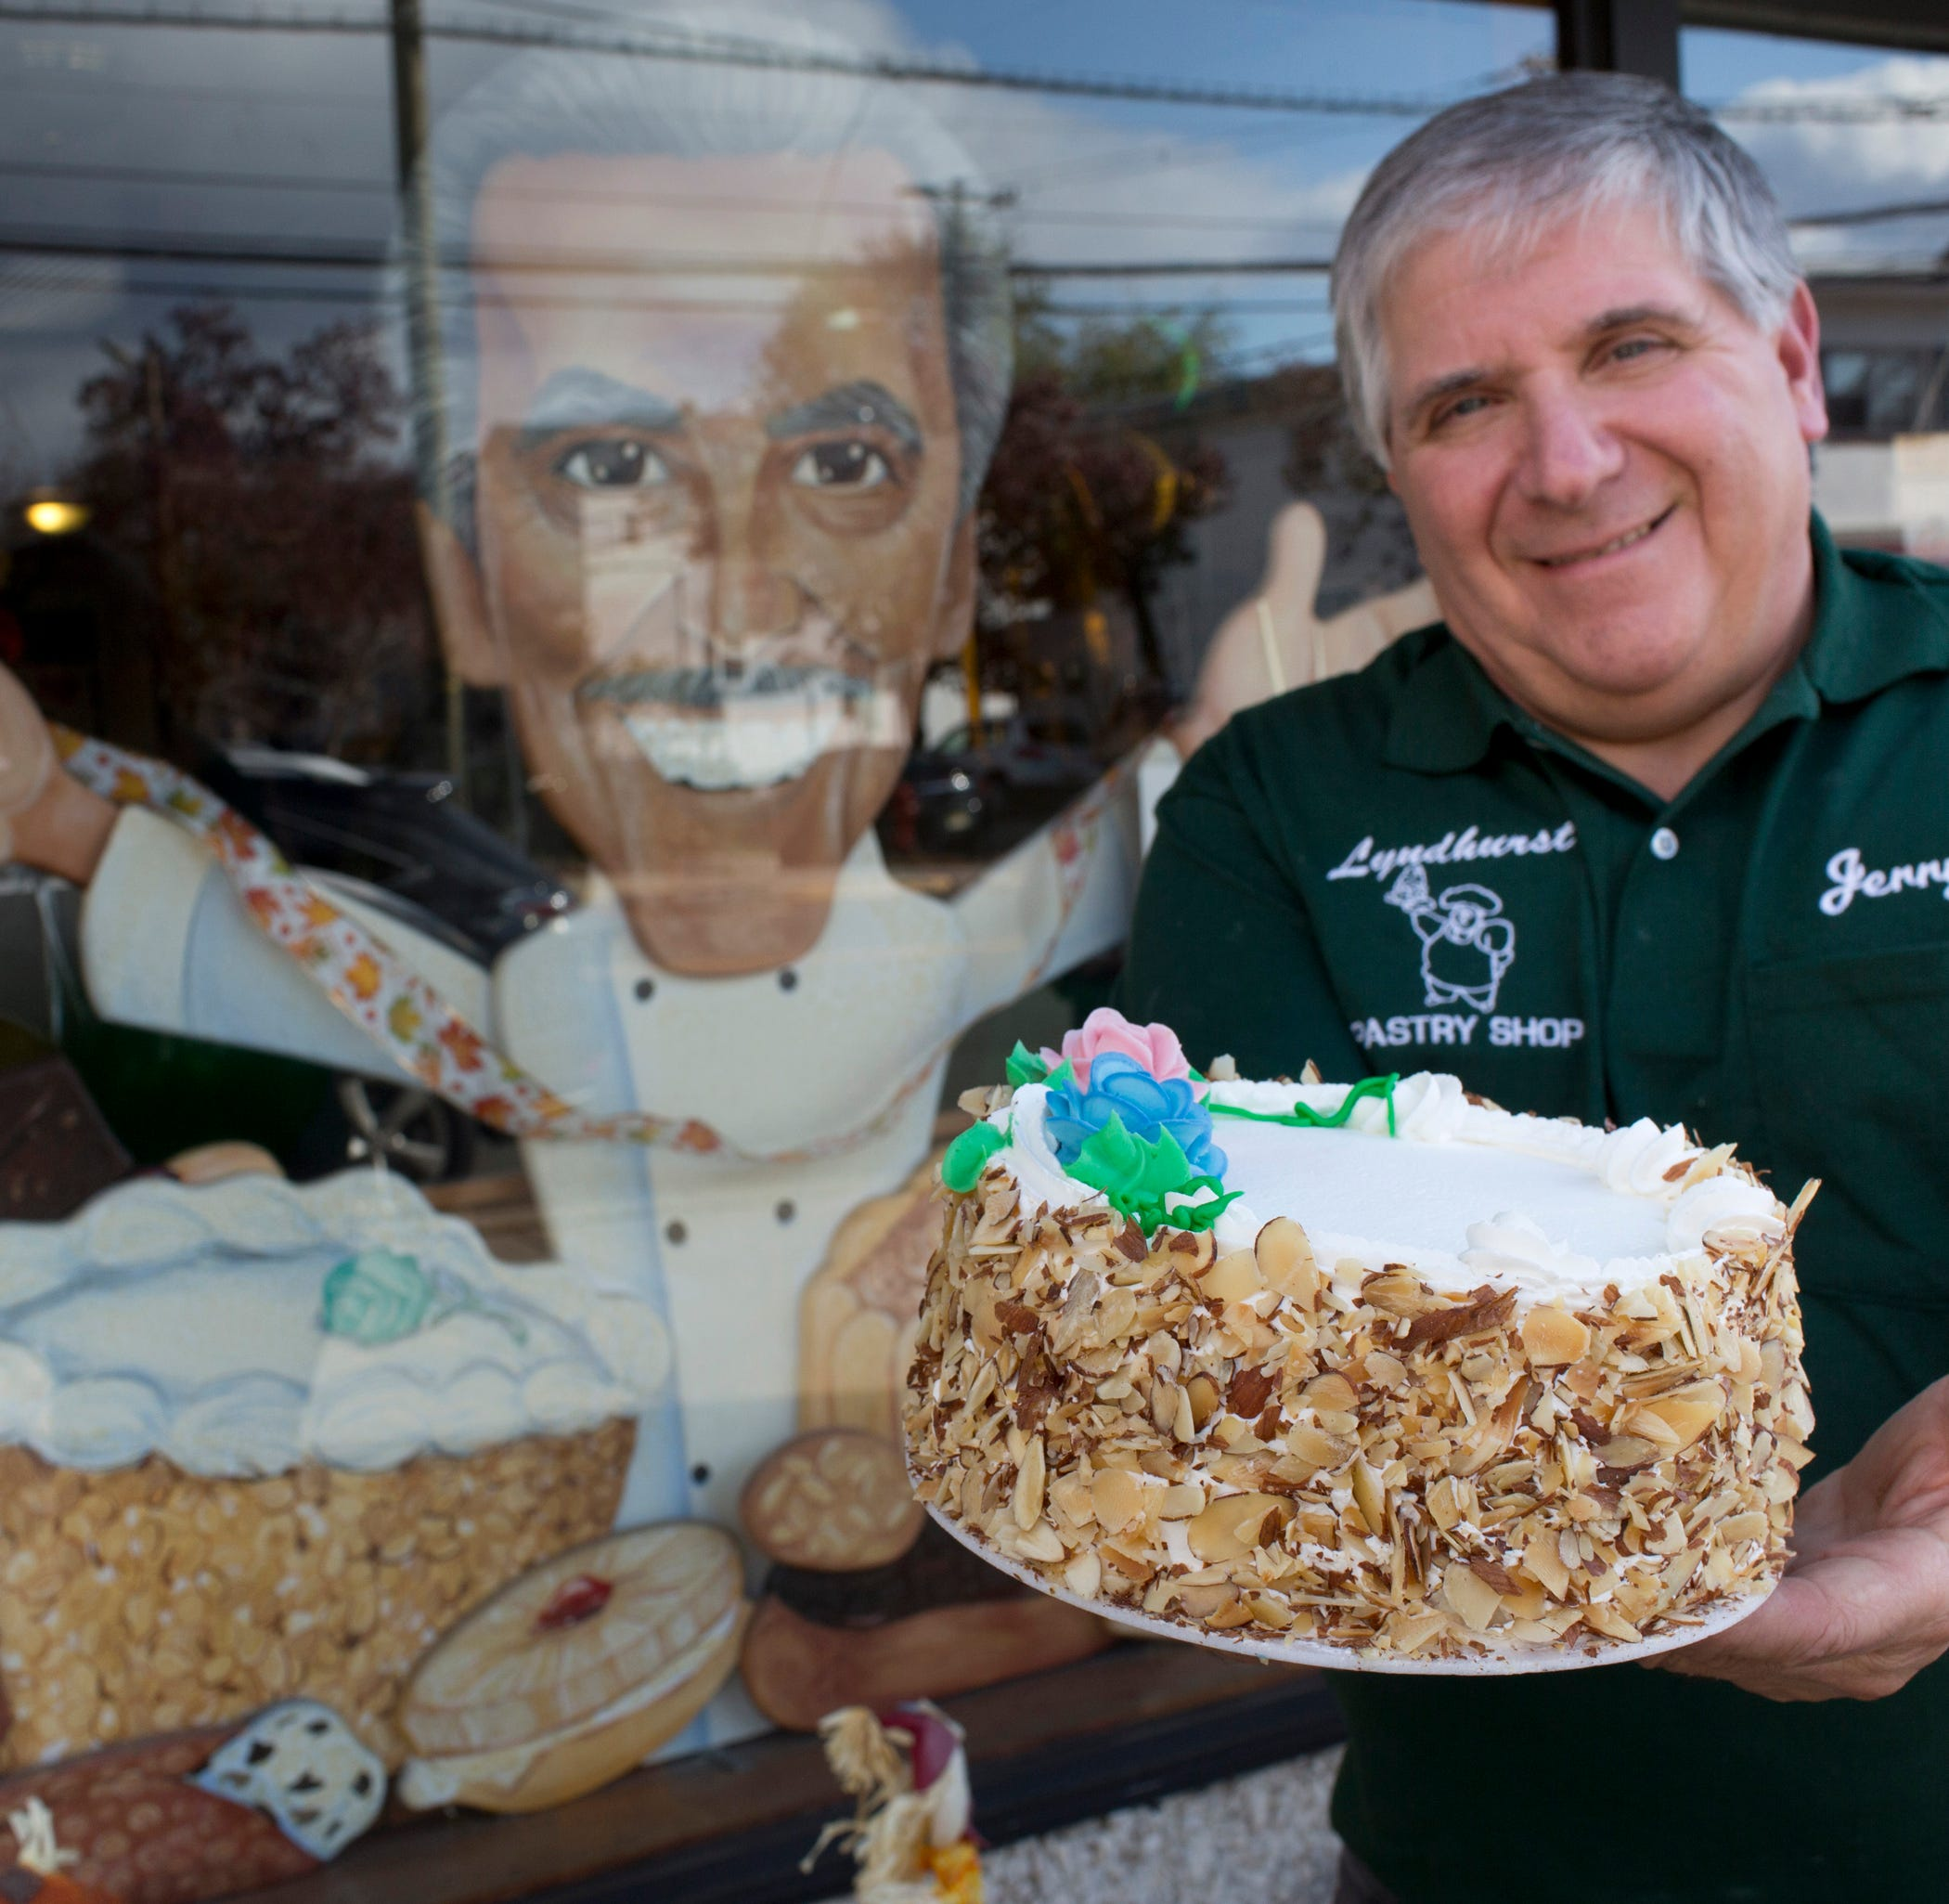 Owners reminisce about 15-cent cookies as Lyndhurst Pastry Shop turns 70